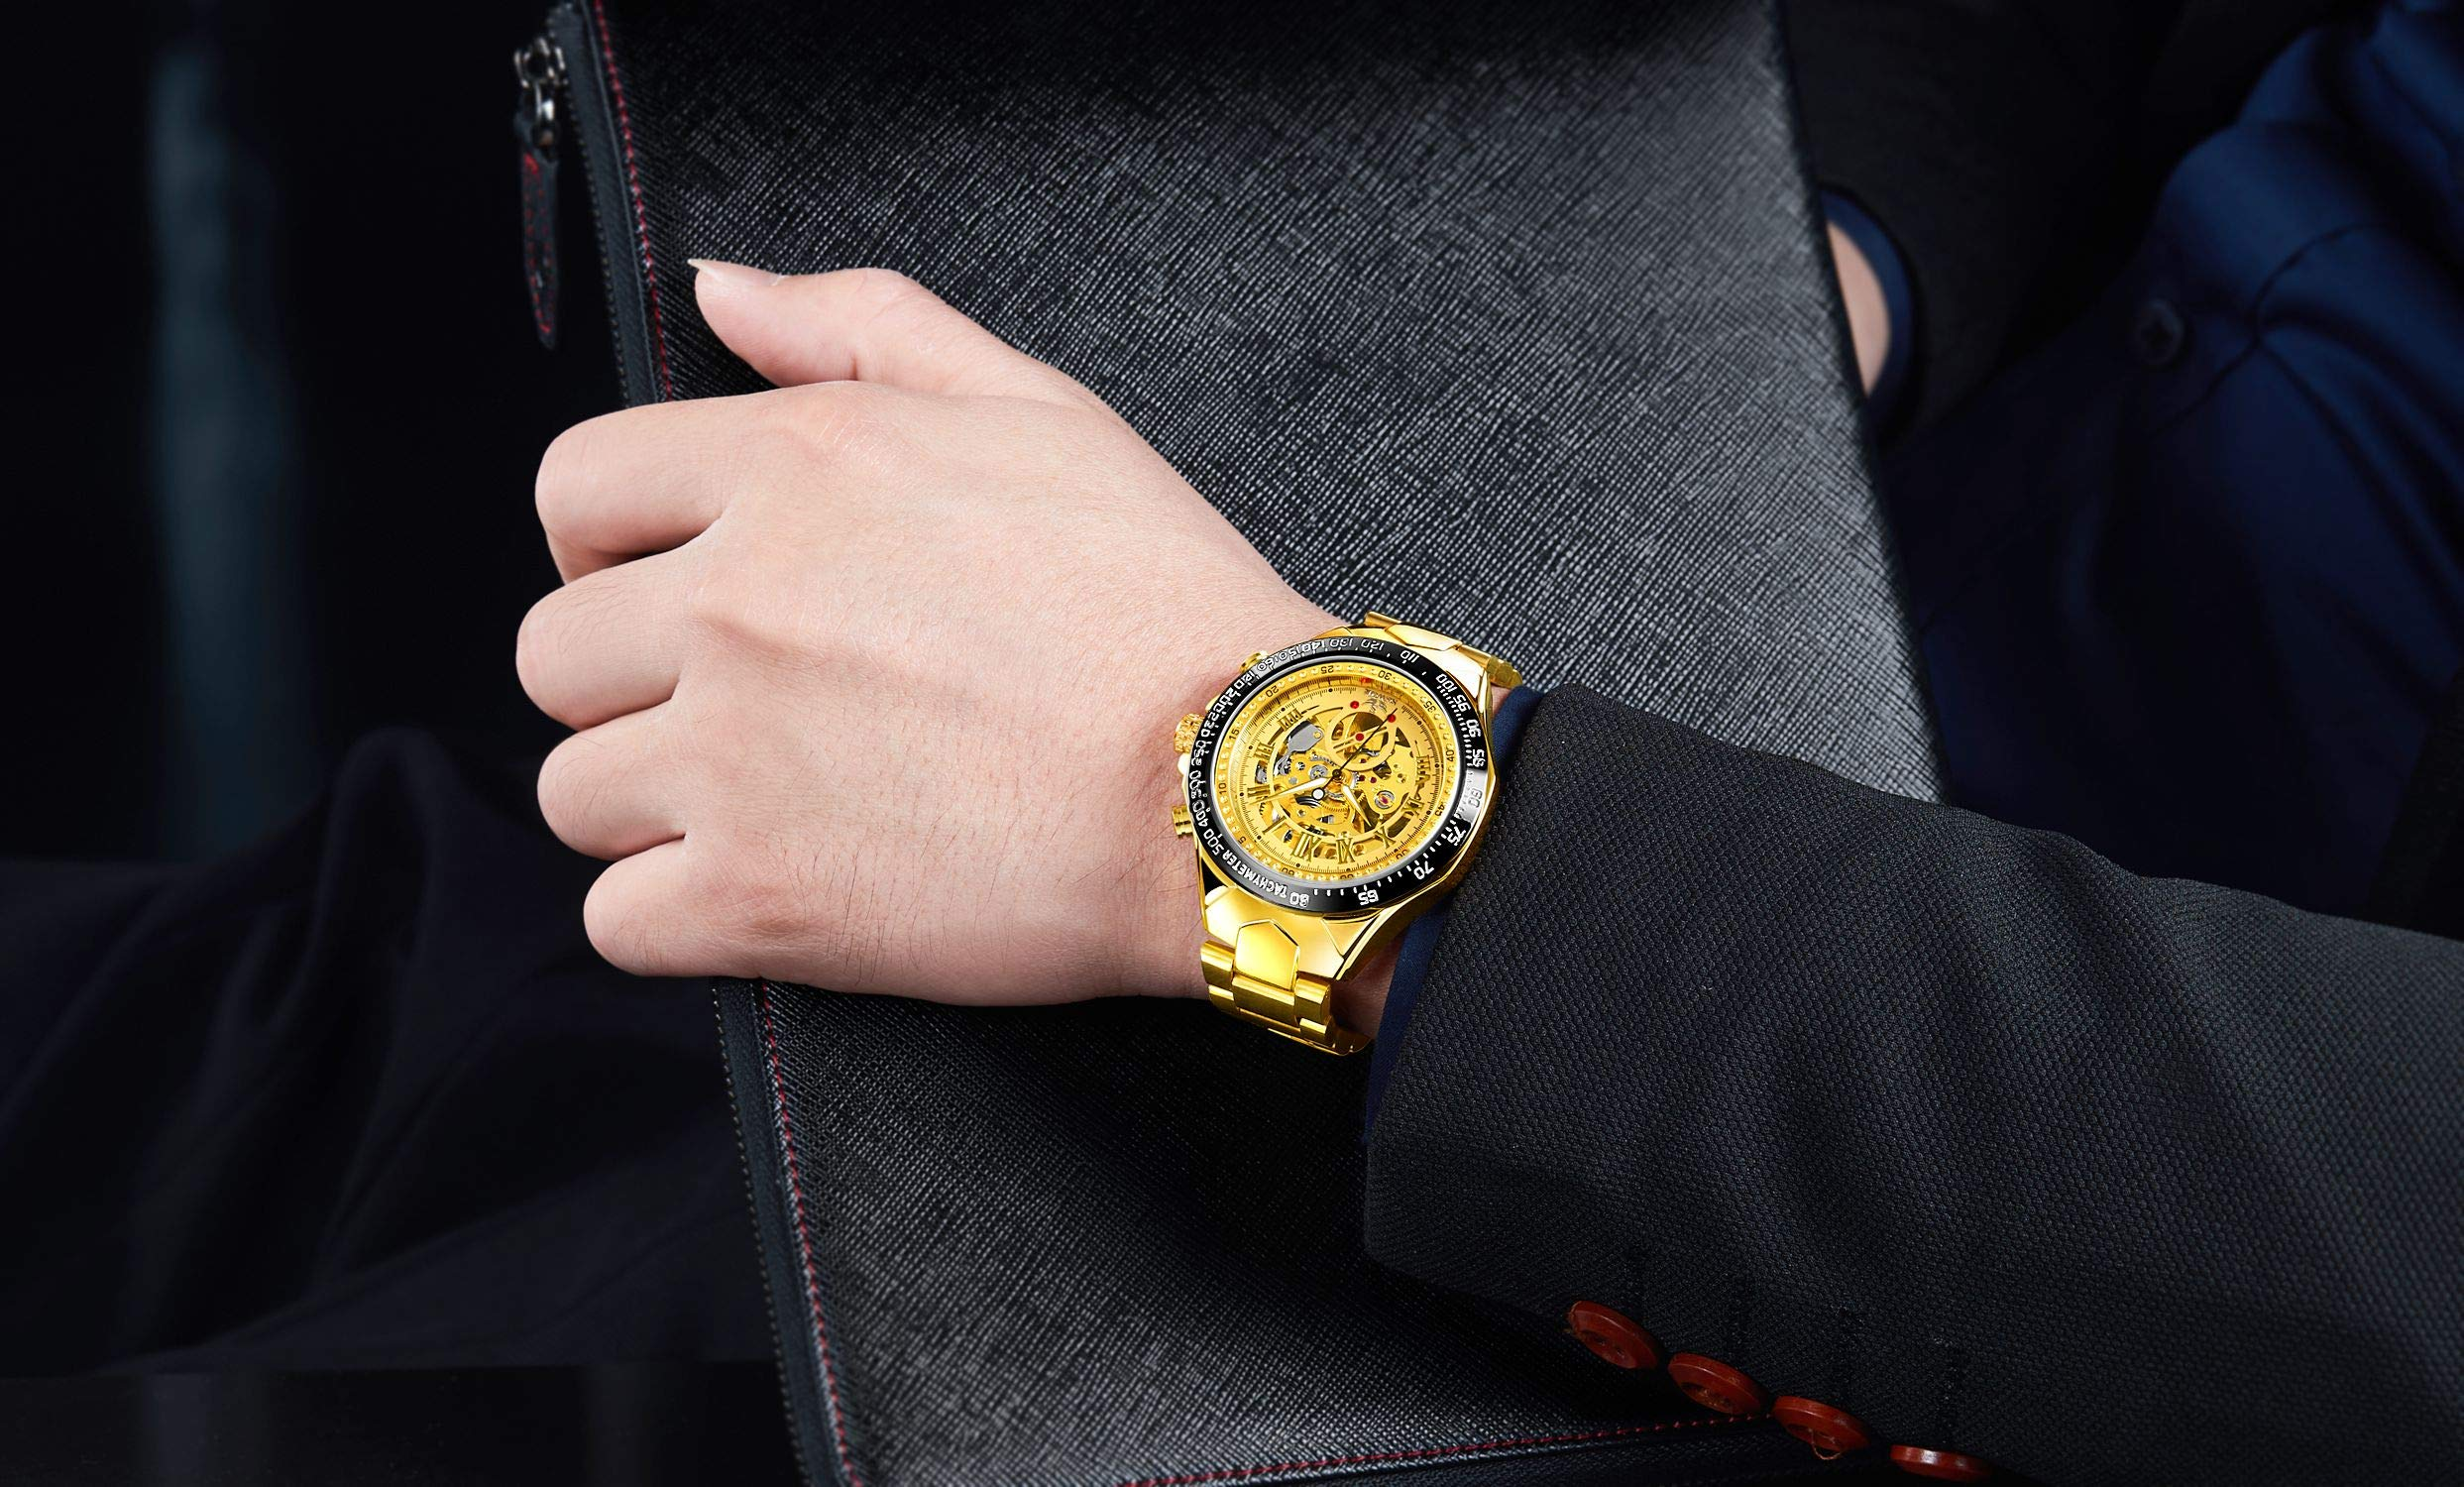 SEWOR Fashion Delicate Hollow Carving Mechanical Automatic Wrist Watch (Gold)